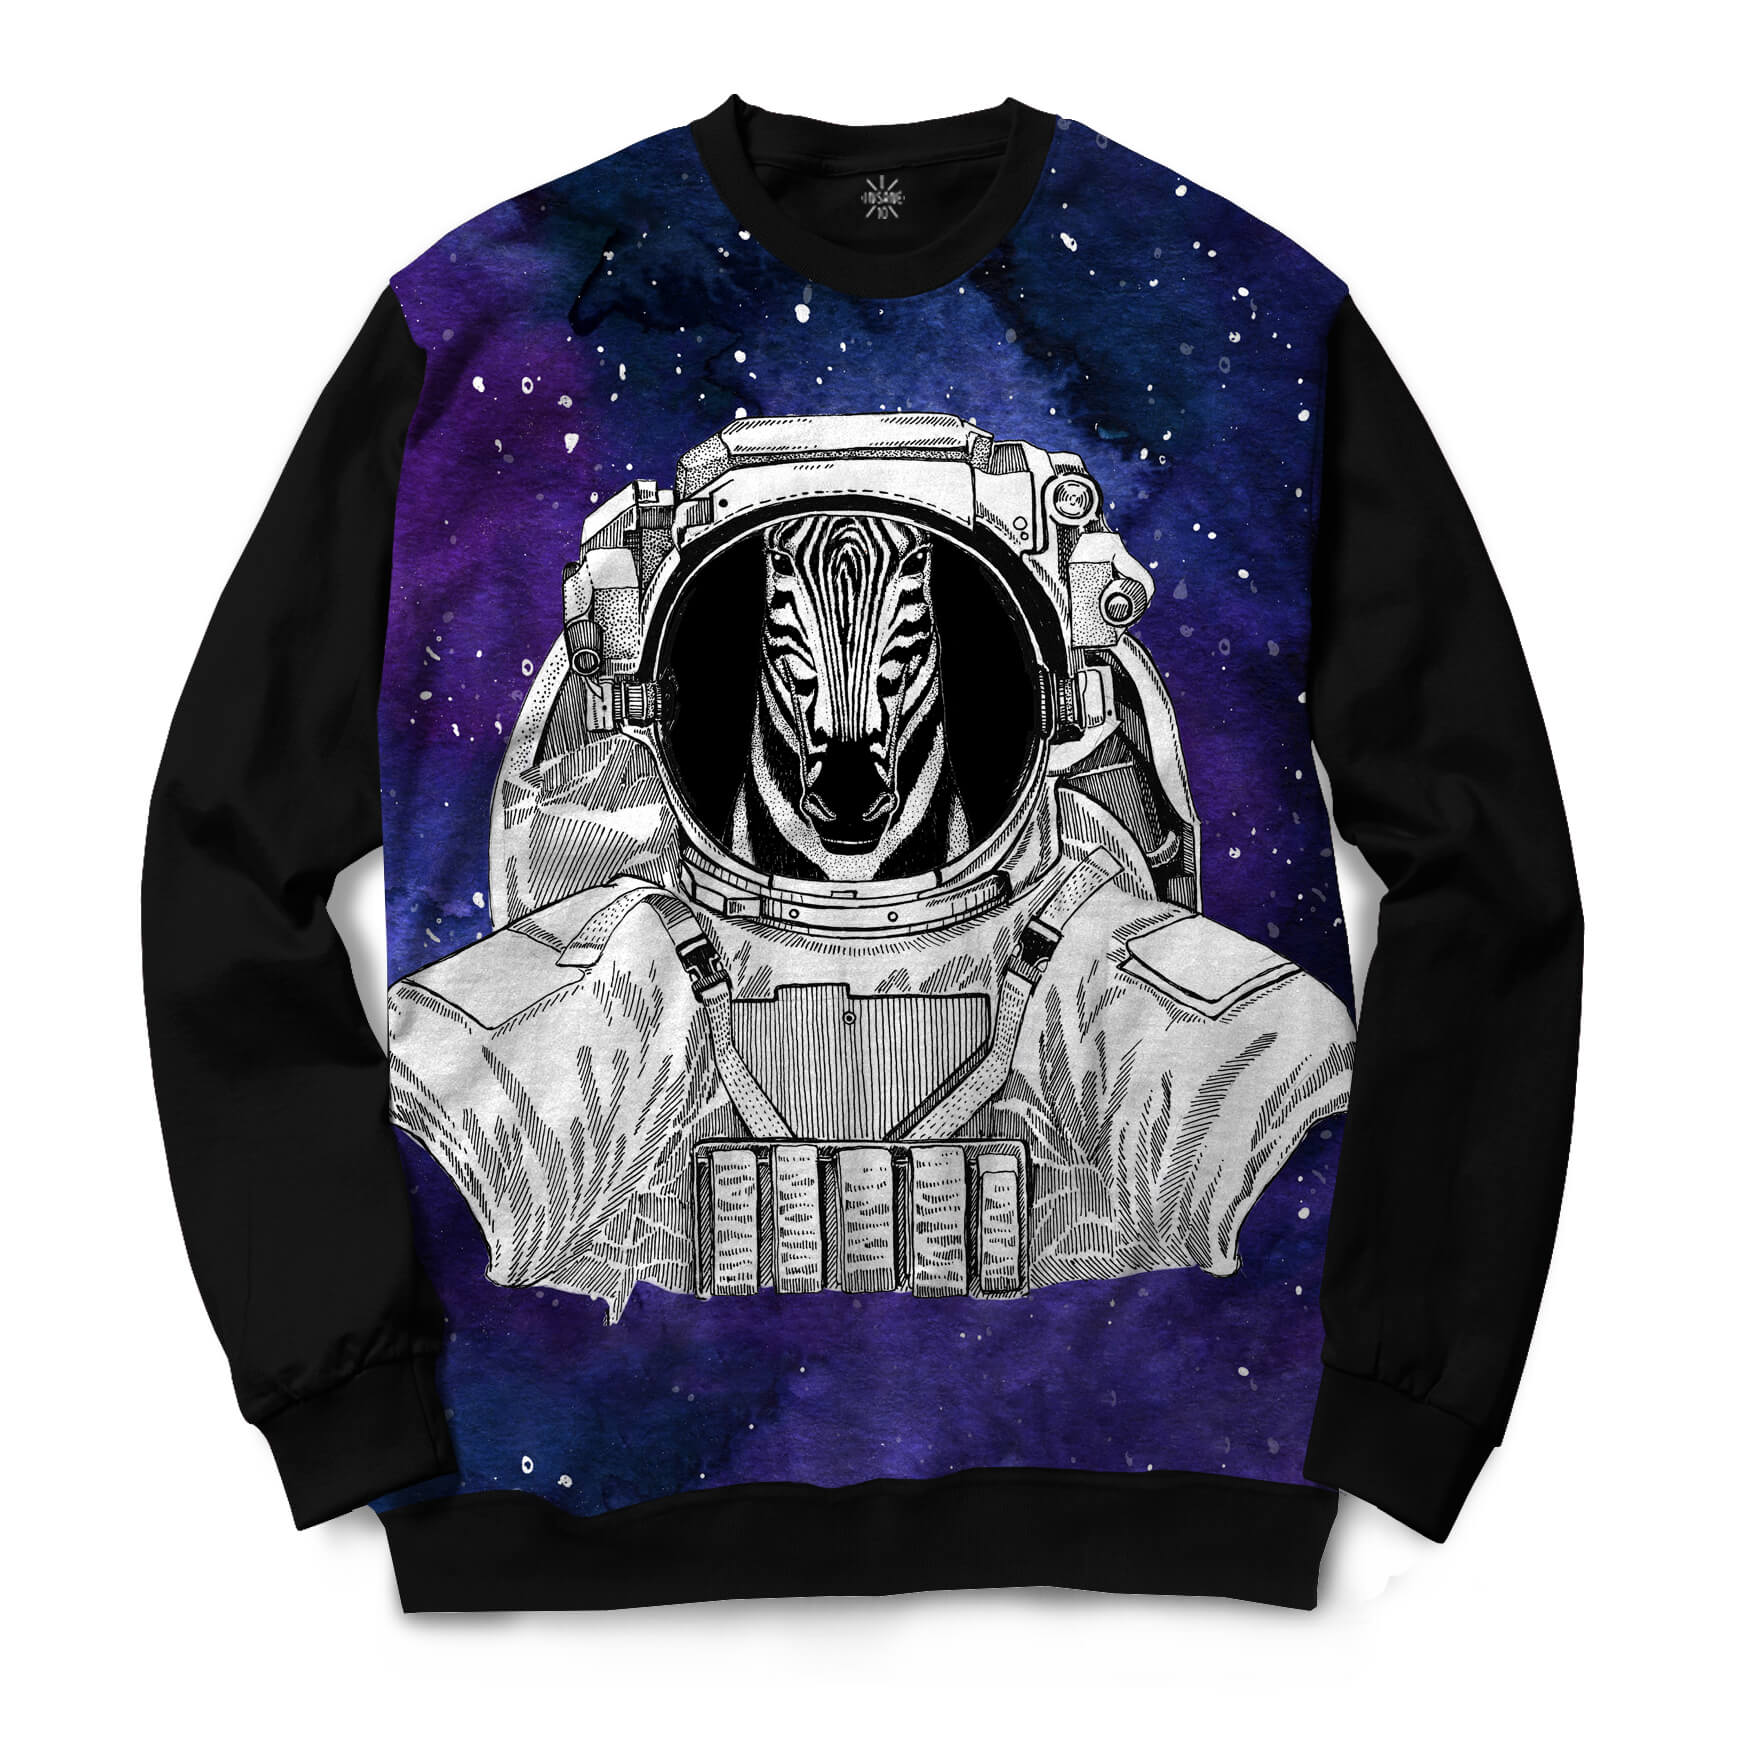 Moletom Gola Careca Insane 10 Animal Astronauta Zebra no Espaço Full Print Preto